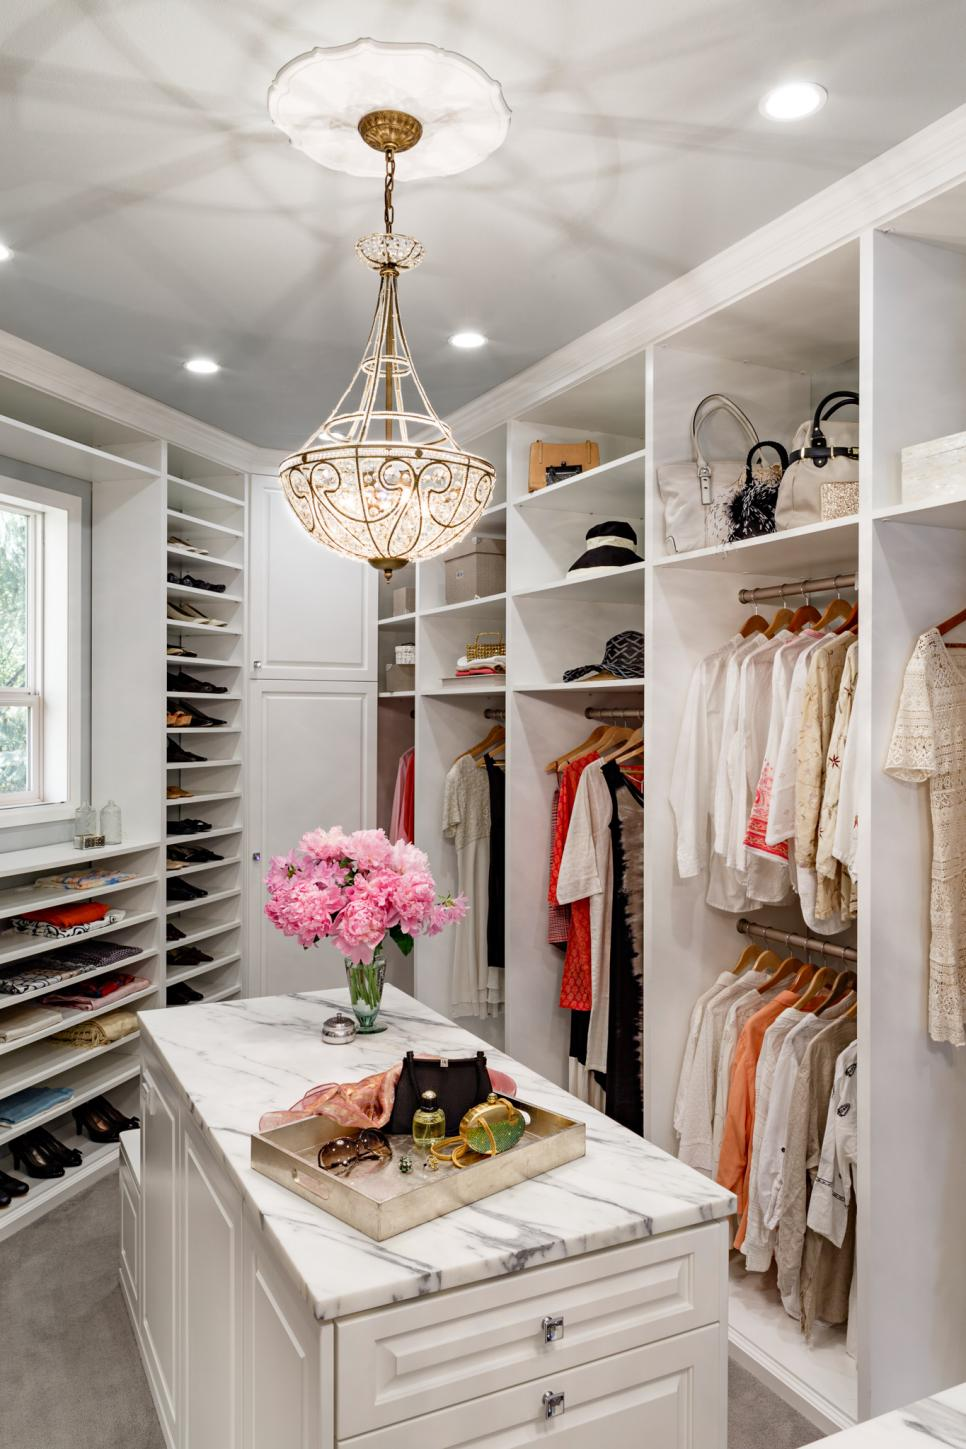 sleek-and-luxurious wardrobe